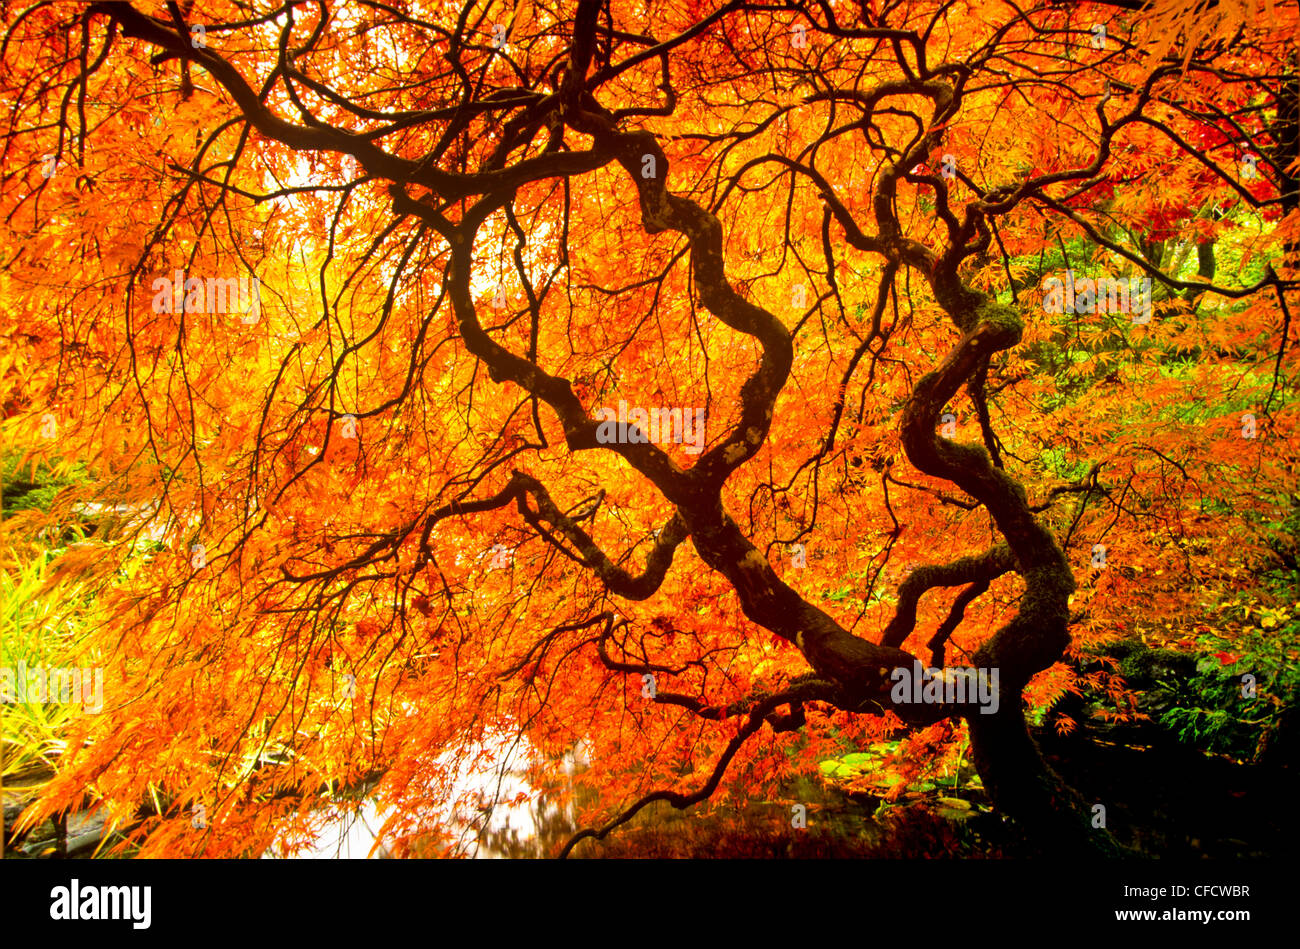 Live Wallpaper Fall Leaves Japanese Maple In Japanese Garden Butchart Gardens